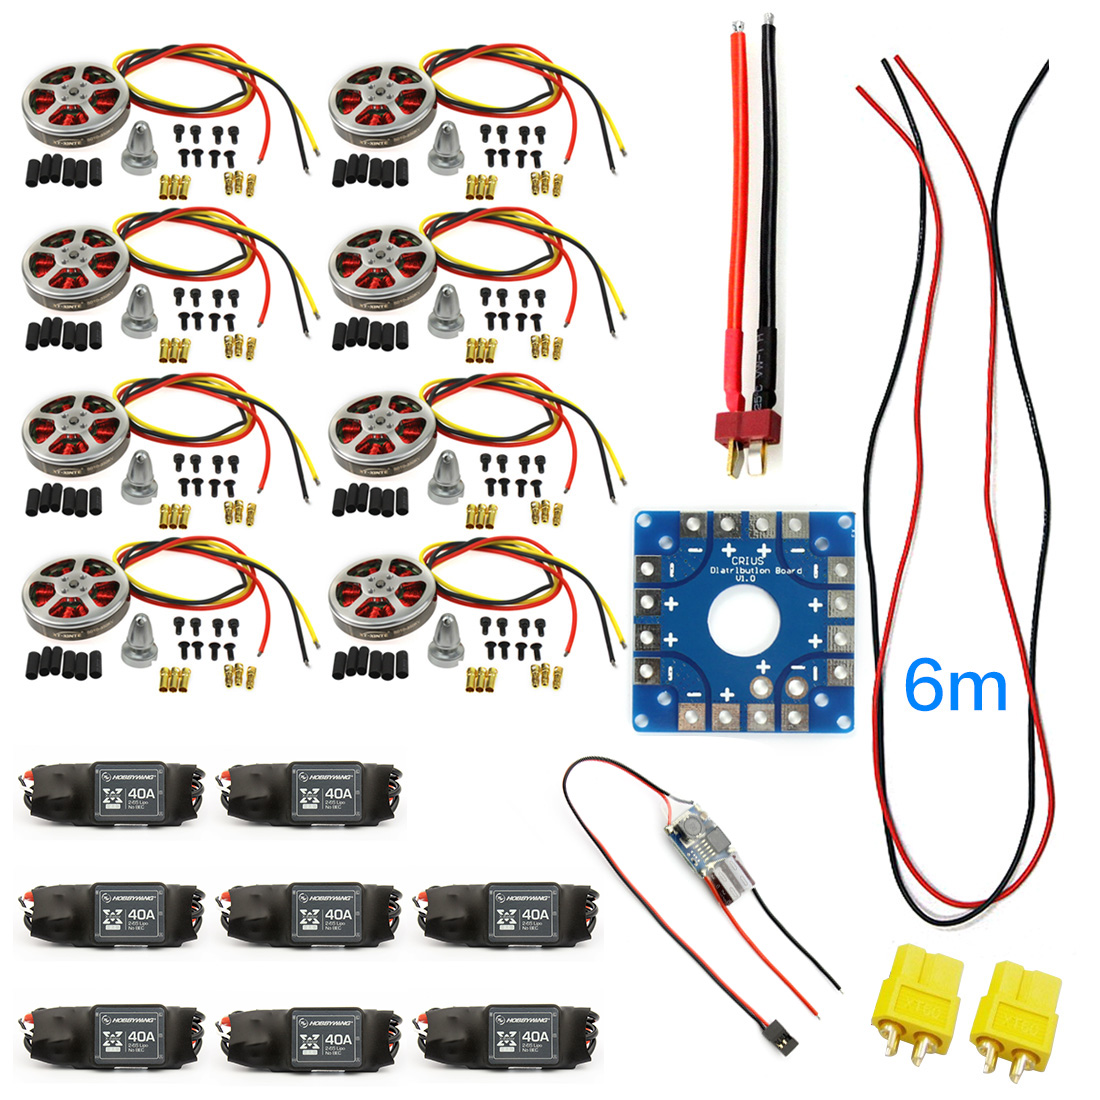 F04997-F JMT Assembled Kit : 40A ESC Controller 350KV Motor Connection Board Wire for 8-axle Drone Multi Rotor Hexacopter FS zy 25 diy solderless assembled 25 hole mini bread board test board multi colored 1 set